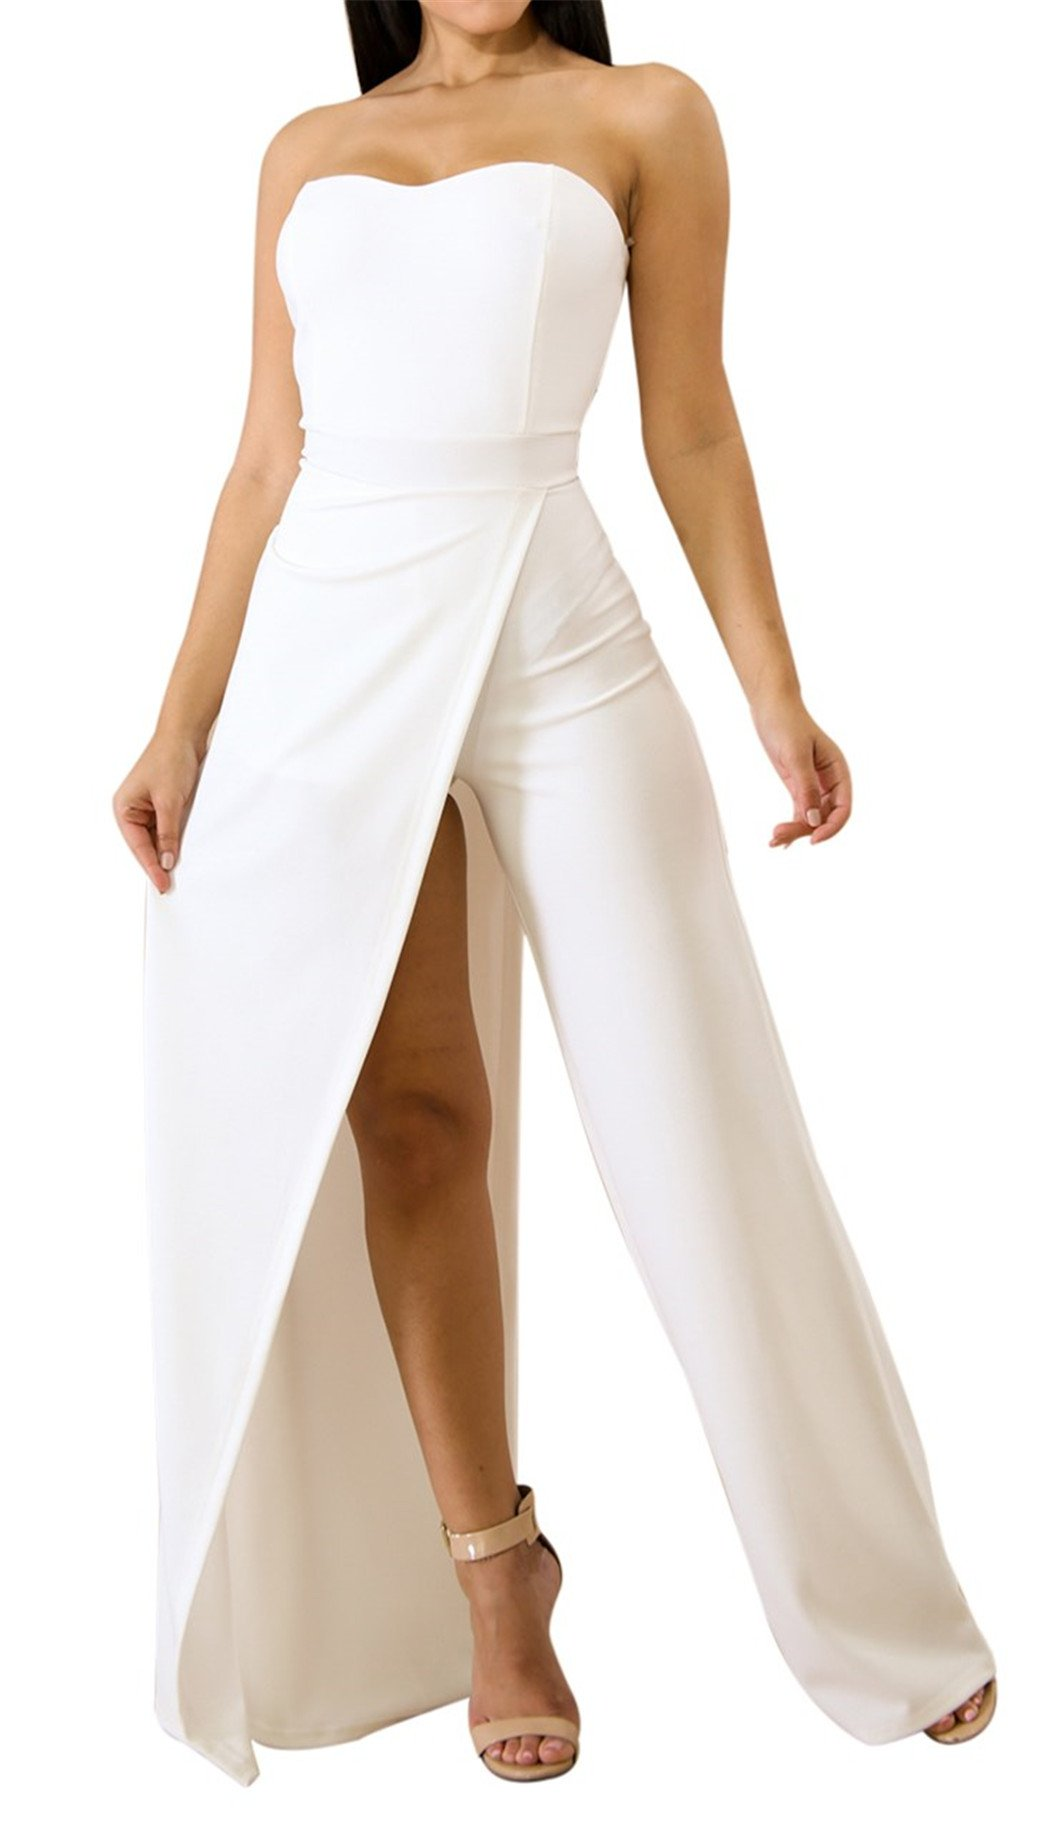 Acelitt Womens Off Shoulder Sleeveless Asymmetric Split Leg Strapless Jumpsuit Rompers White Large